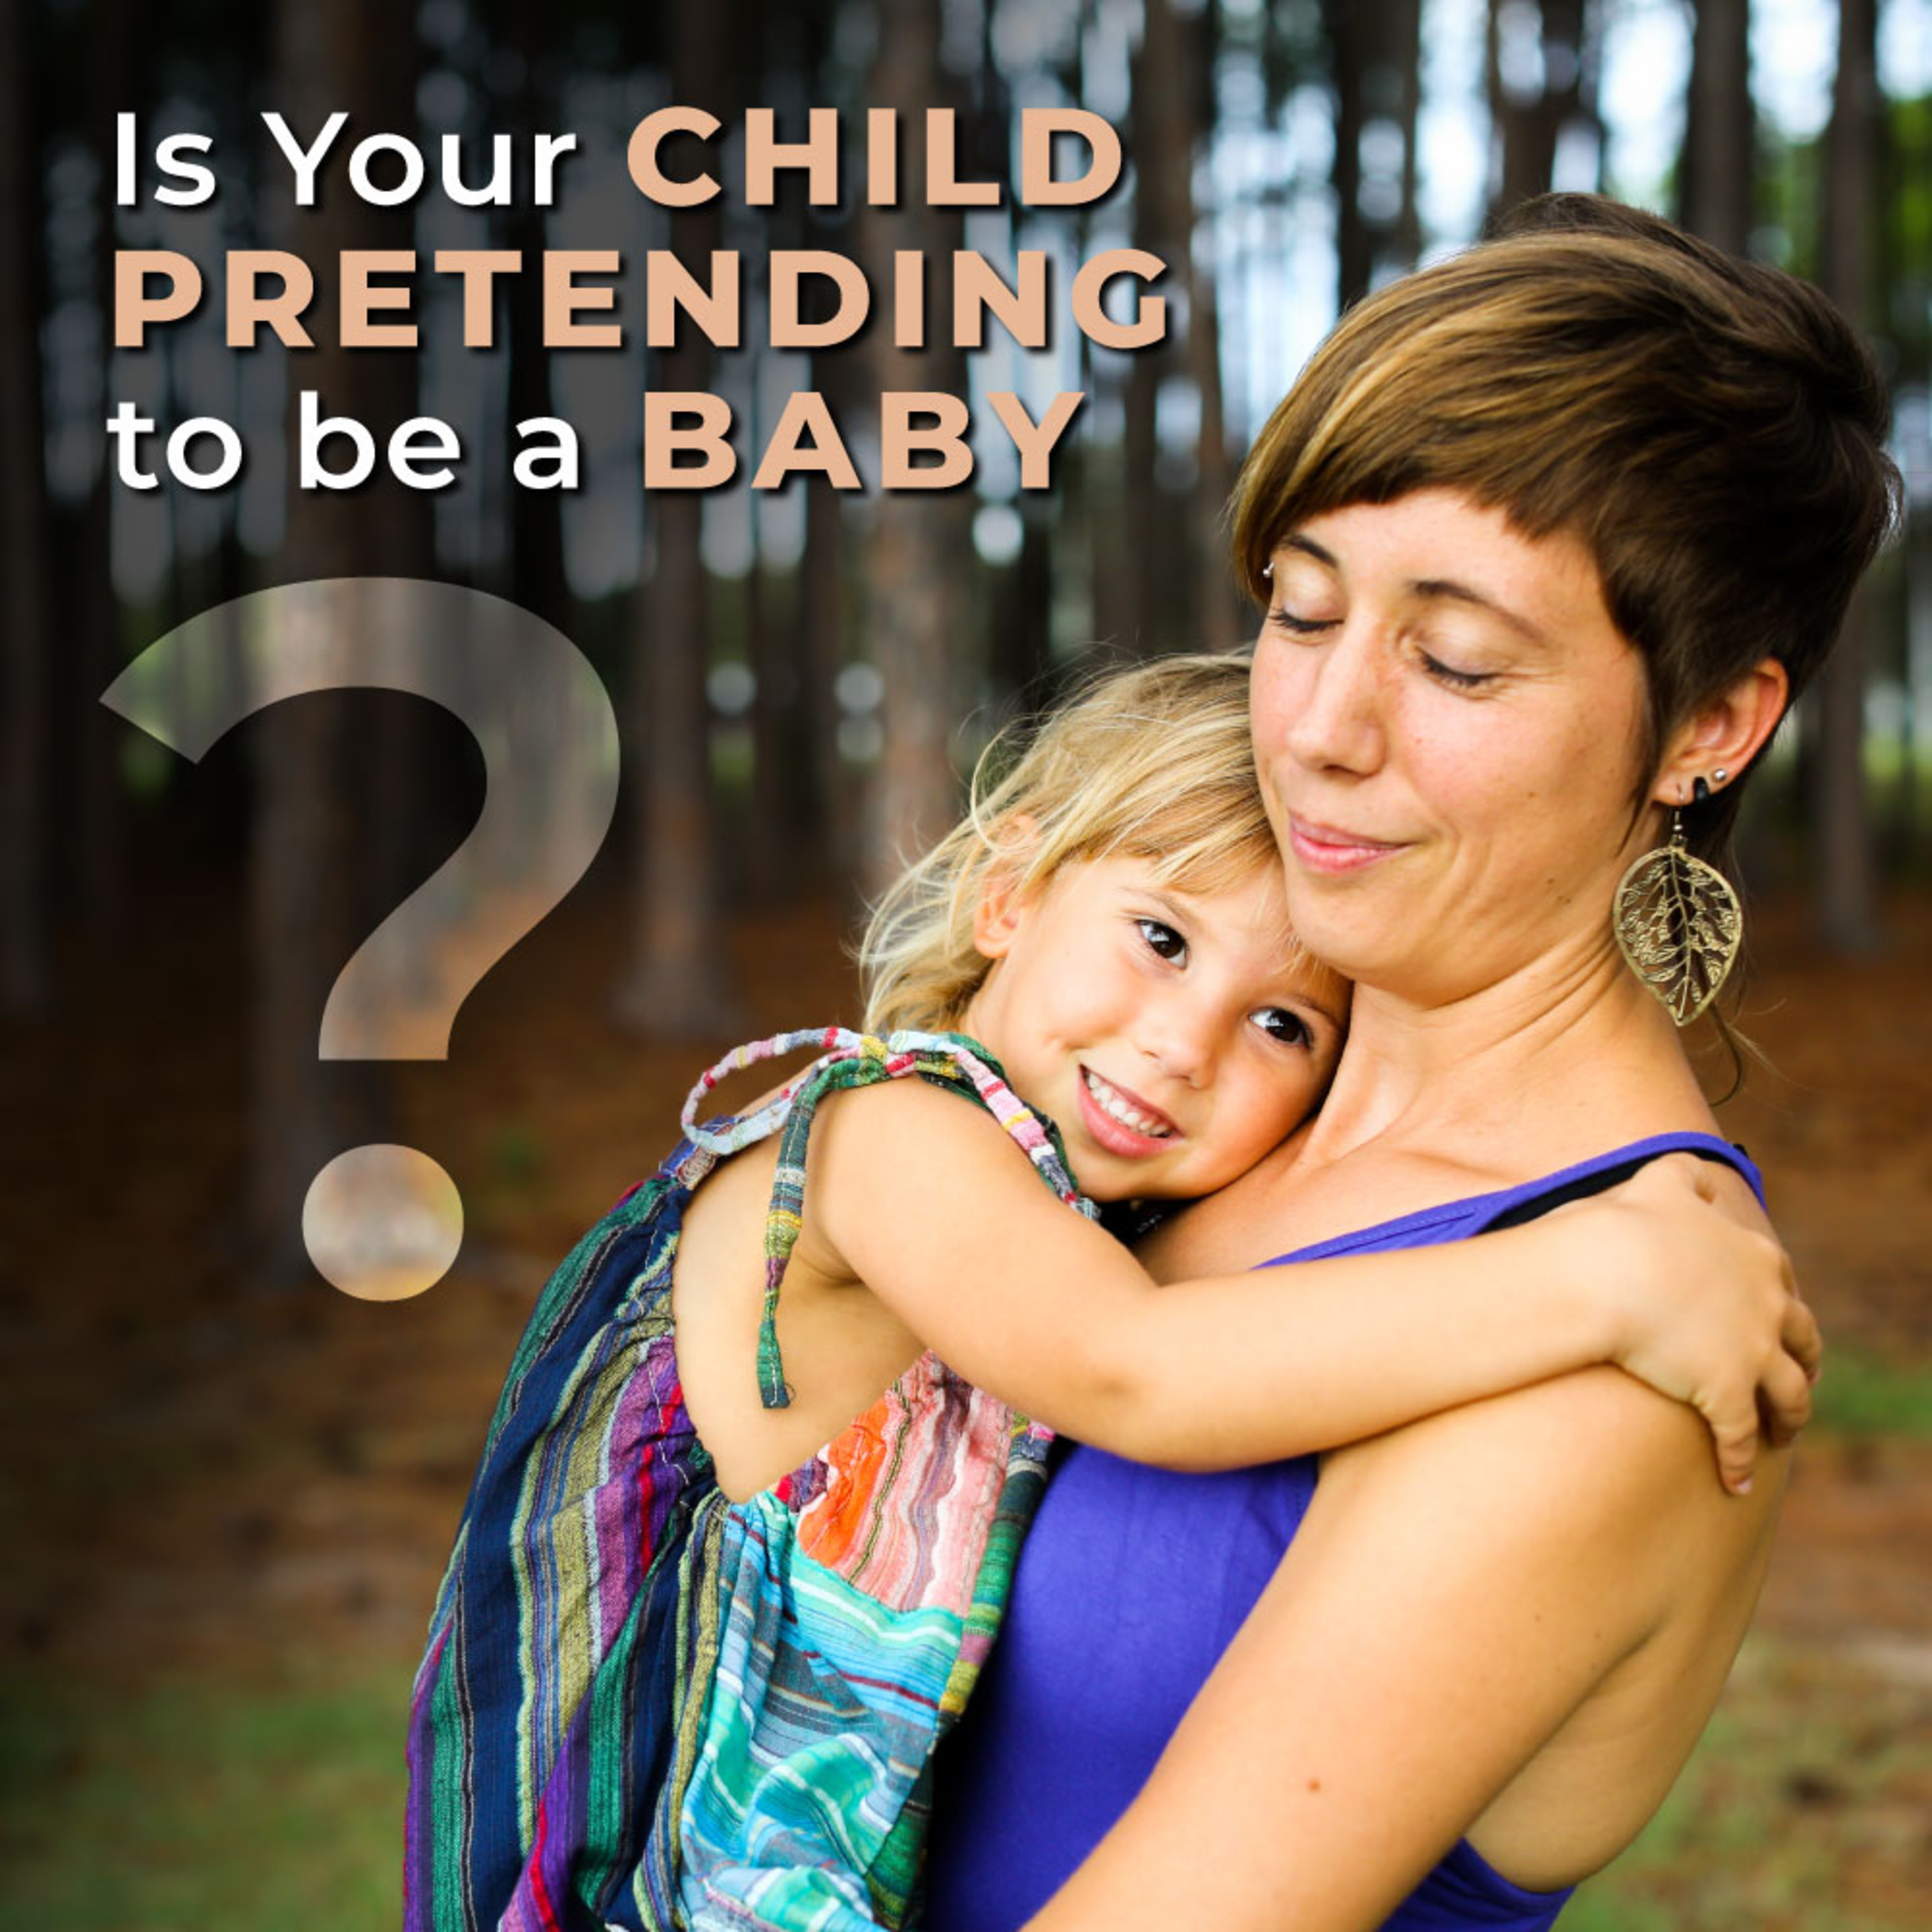 Is your child PRETENDING to be a BABY?